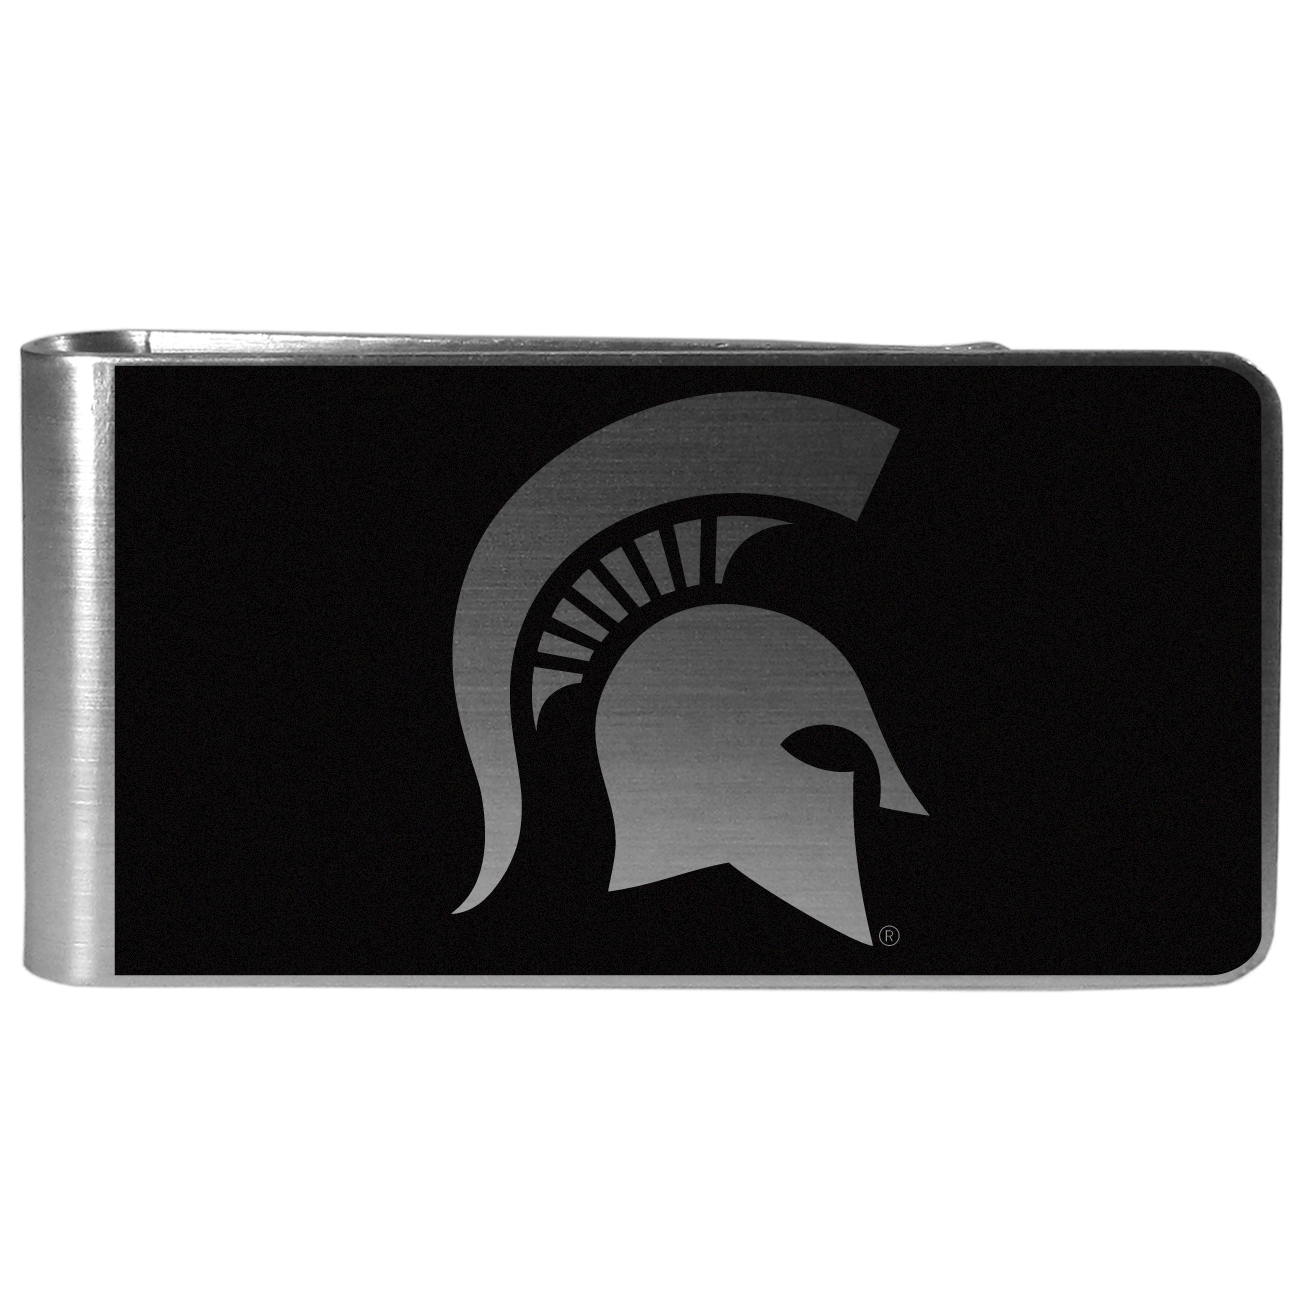 Michigan St. Spartans Black and Steel Money Clip - Our monochromatic steel money clips have a classic style and superior quality. The strong, steel clip has a black overlay of the Michigan St. Spartans logo over the brushed metal finish creating a stylish men's fashion accessory that would make any fan proud.